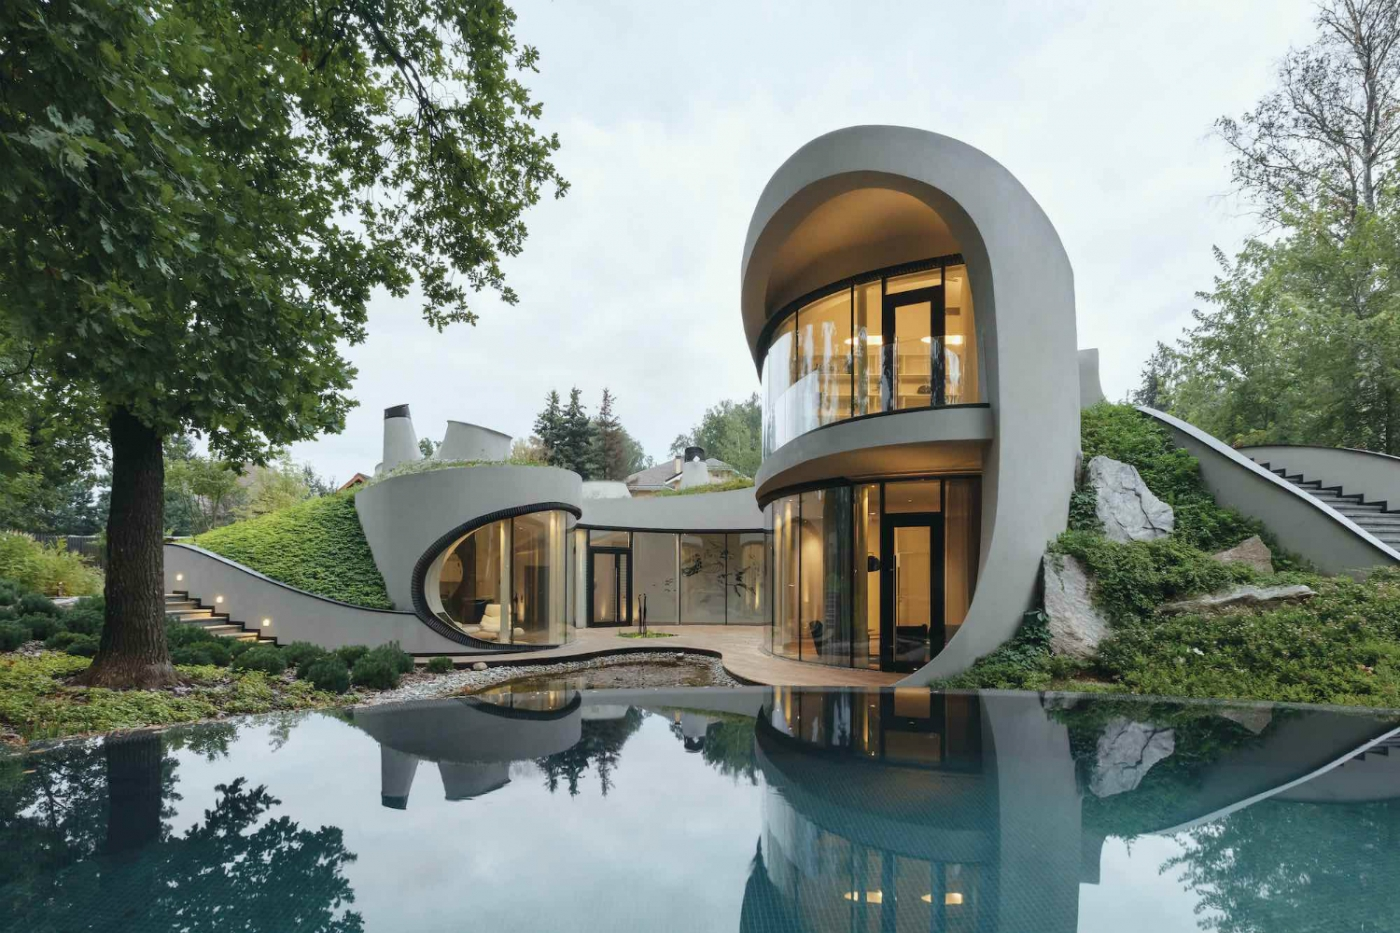 Organic-Meets-Futuristic-Design-House-in-The-Landscape-feature-1400x933